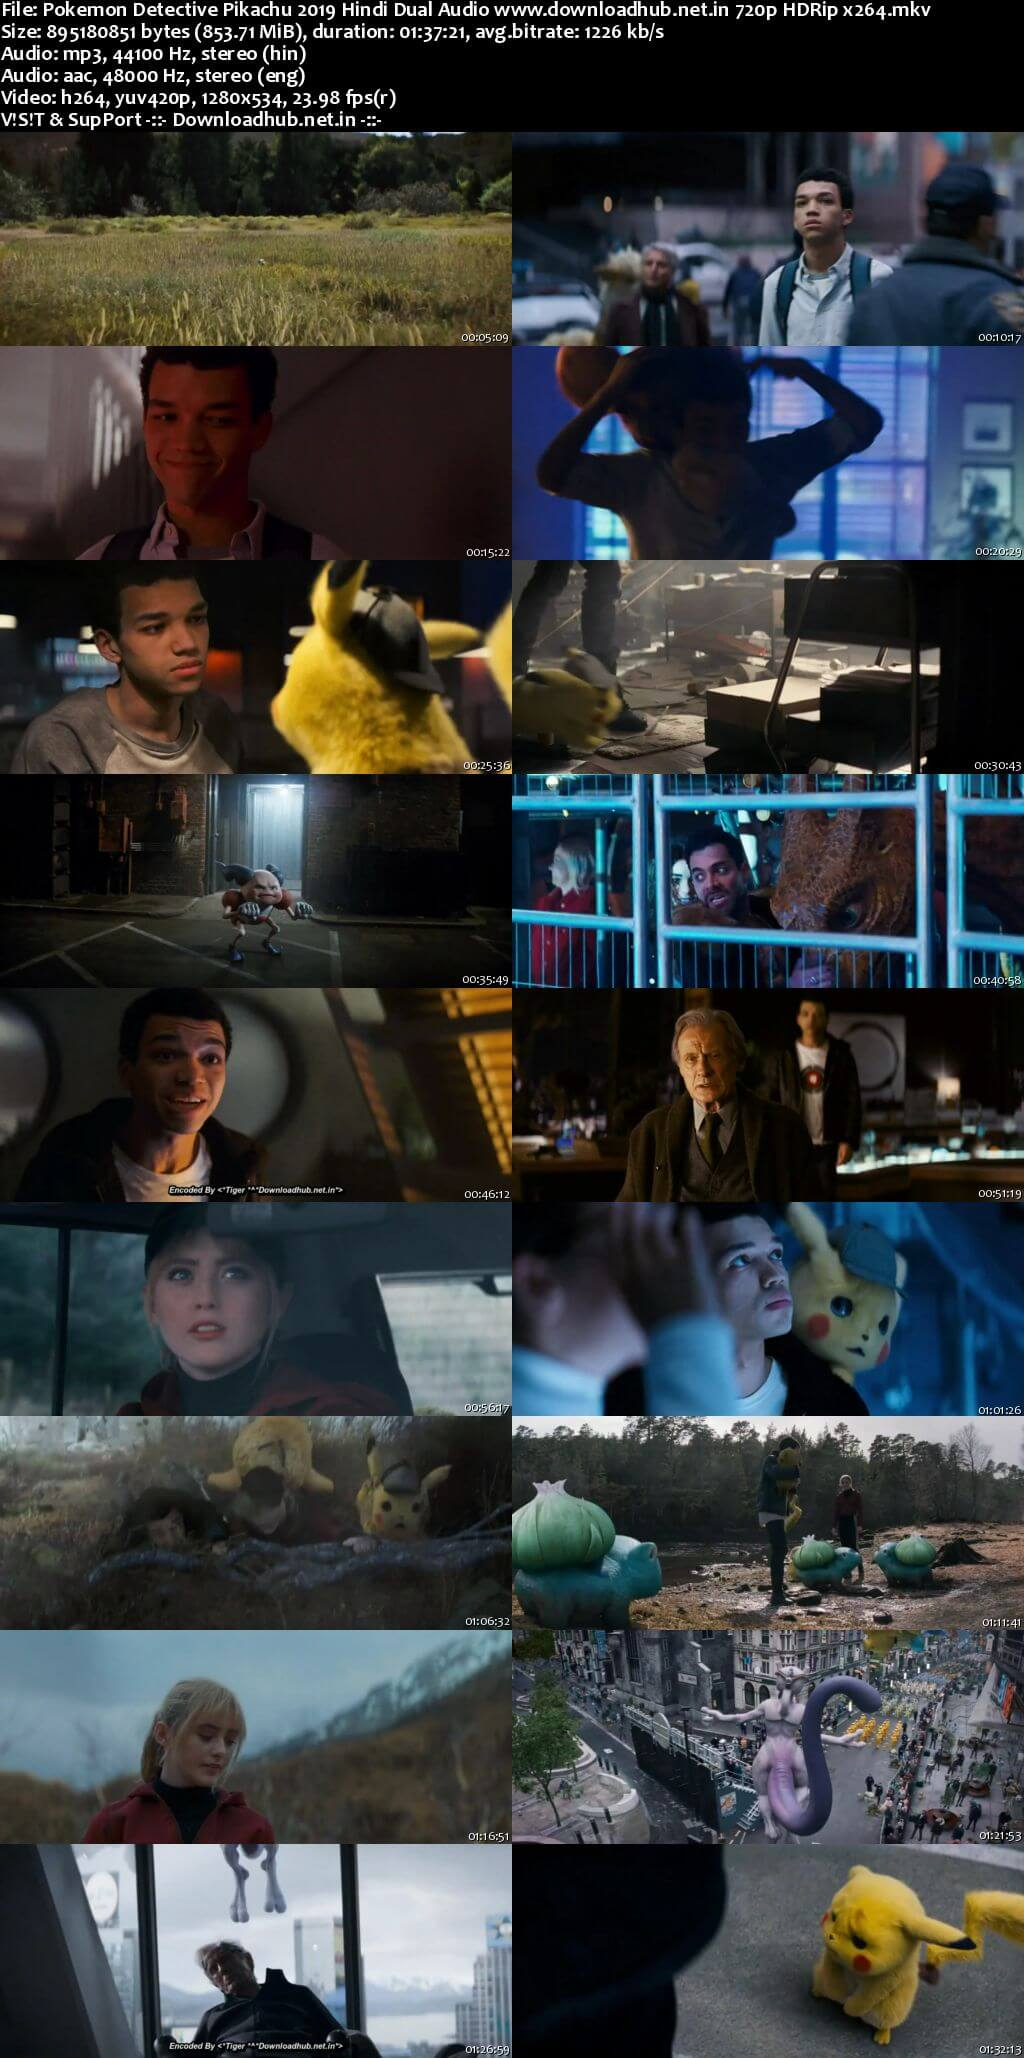 Pokemon Detective Pikachu 2019 Hindi Dual Audio 720p HDRip x264